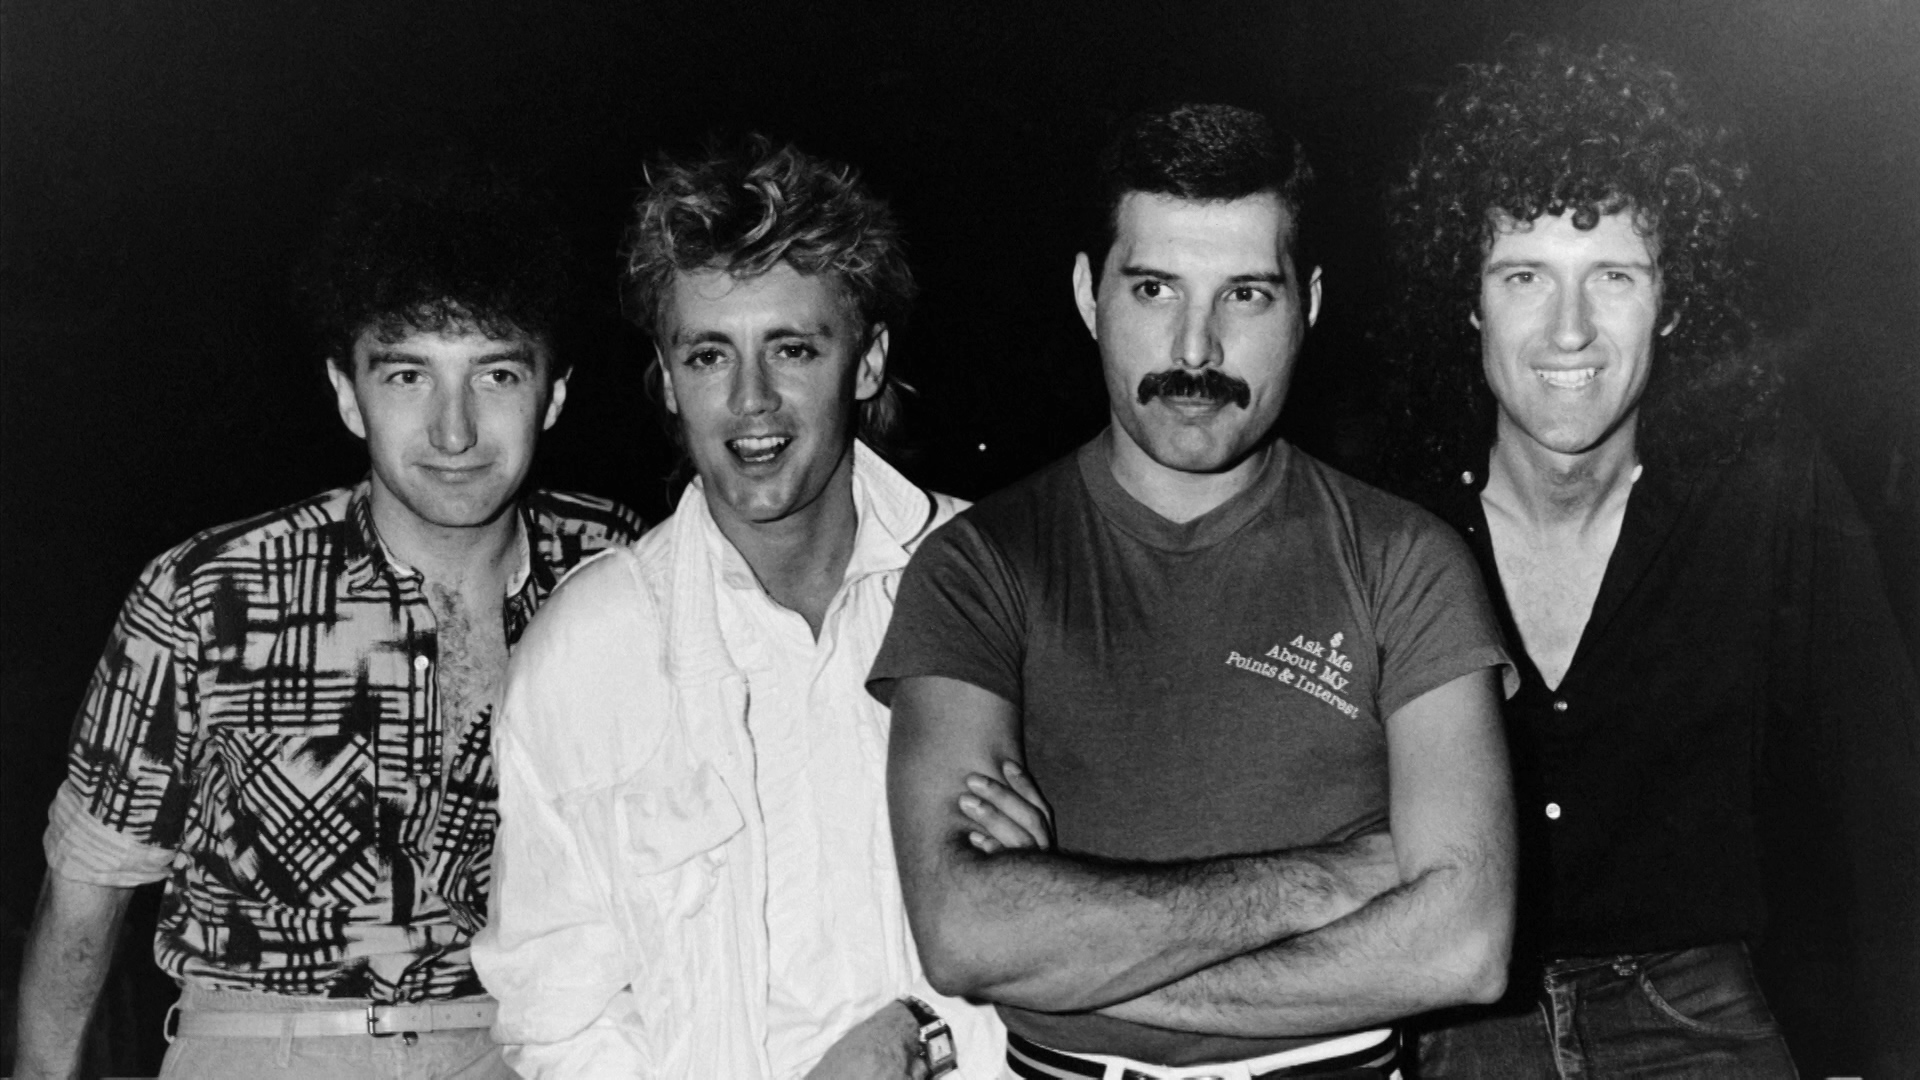 The Freddie Mercury Story: Who Wants to Live Forever - archive image of Queen band together BW